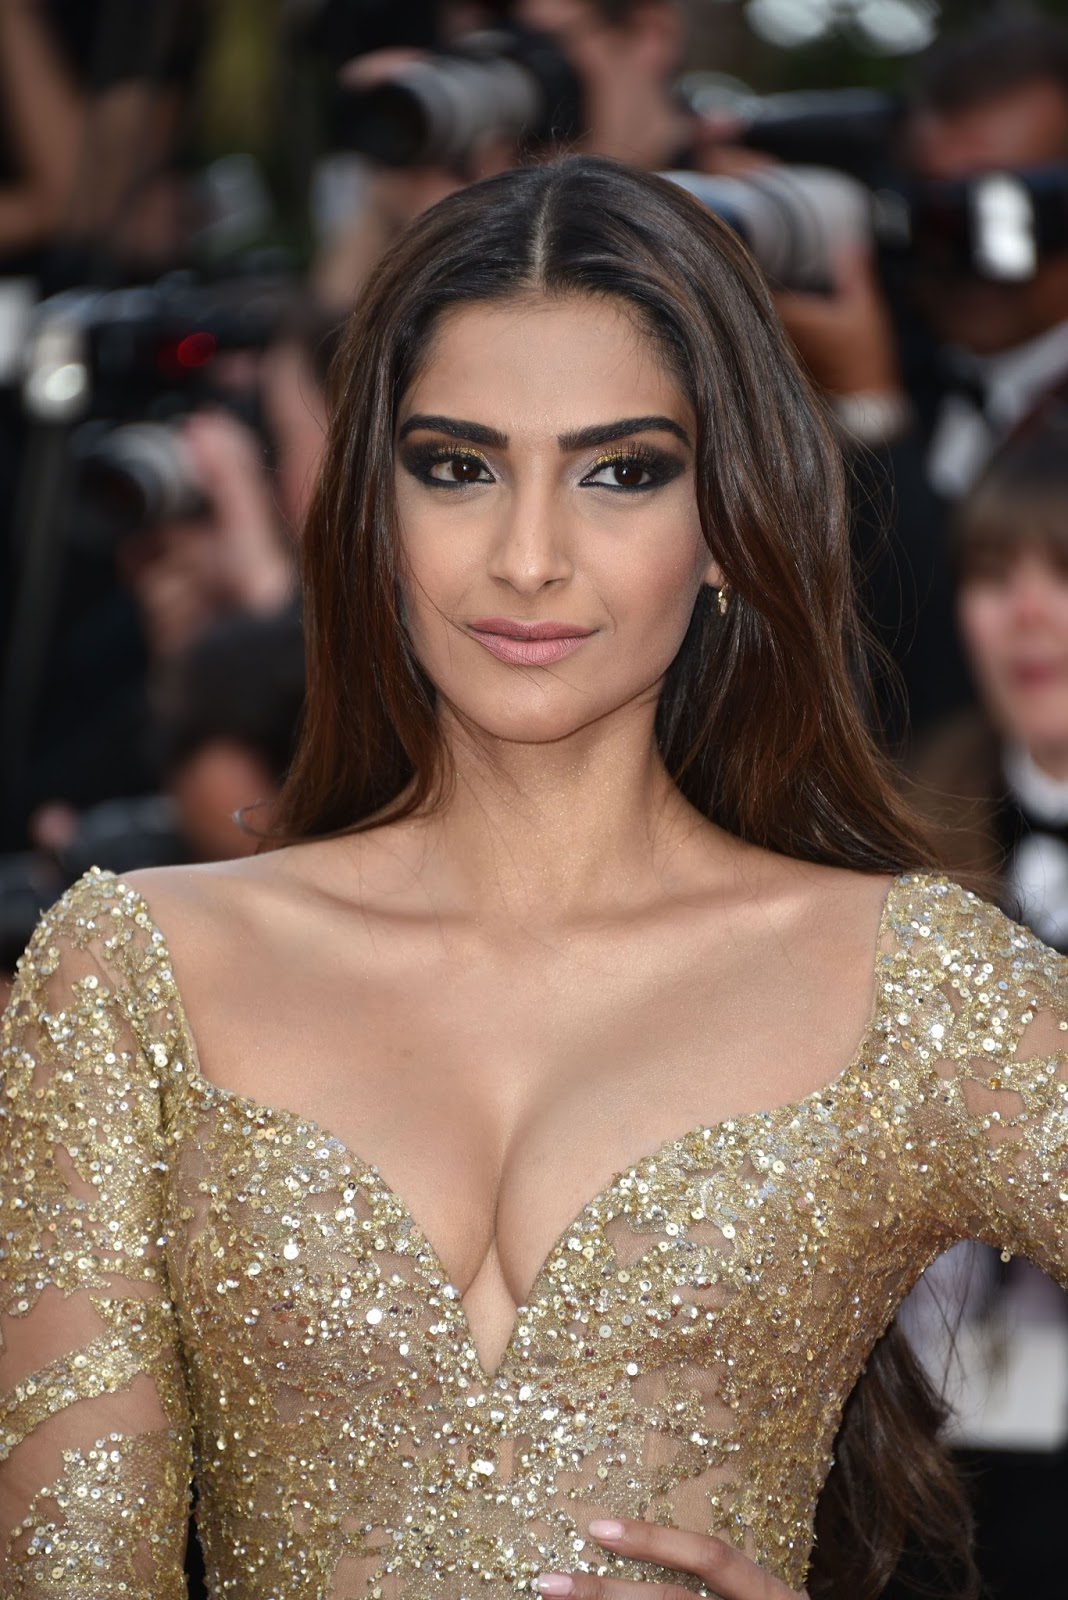 Nude Photos Of Sonam Kapoor